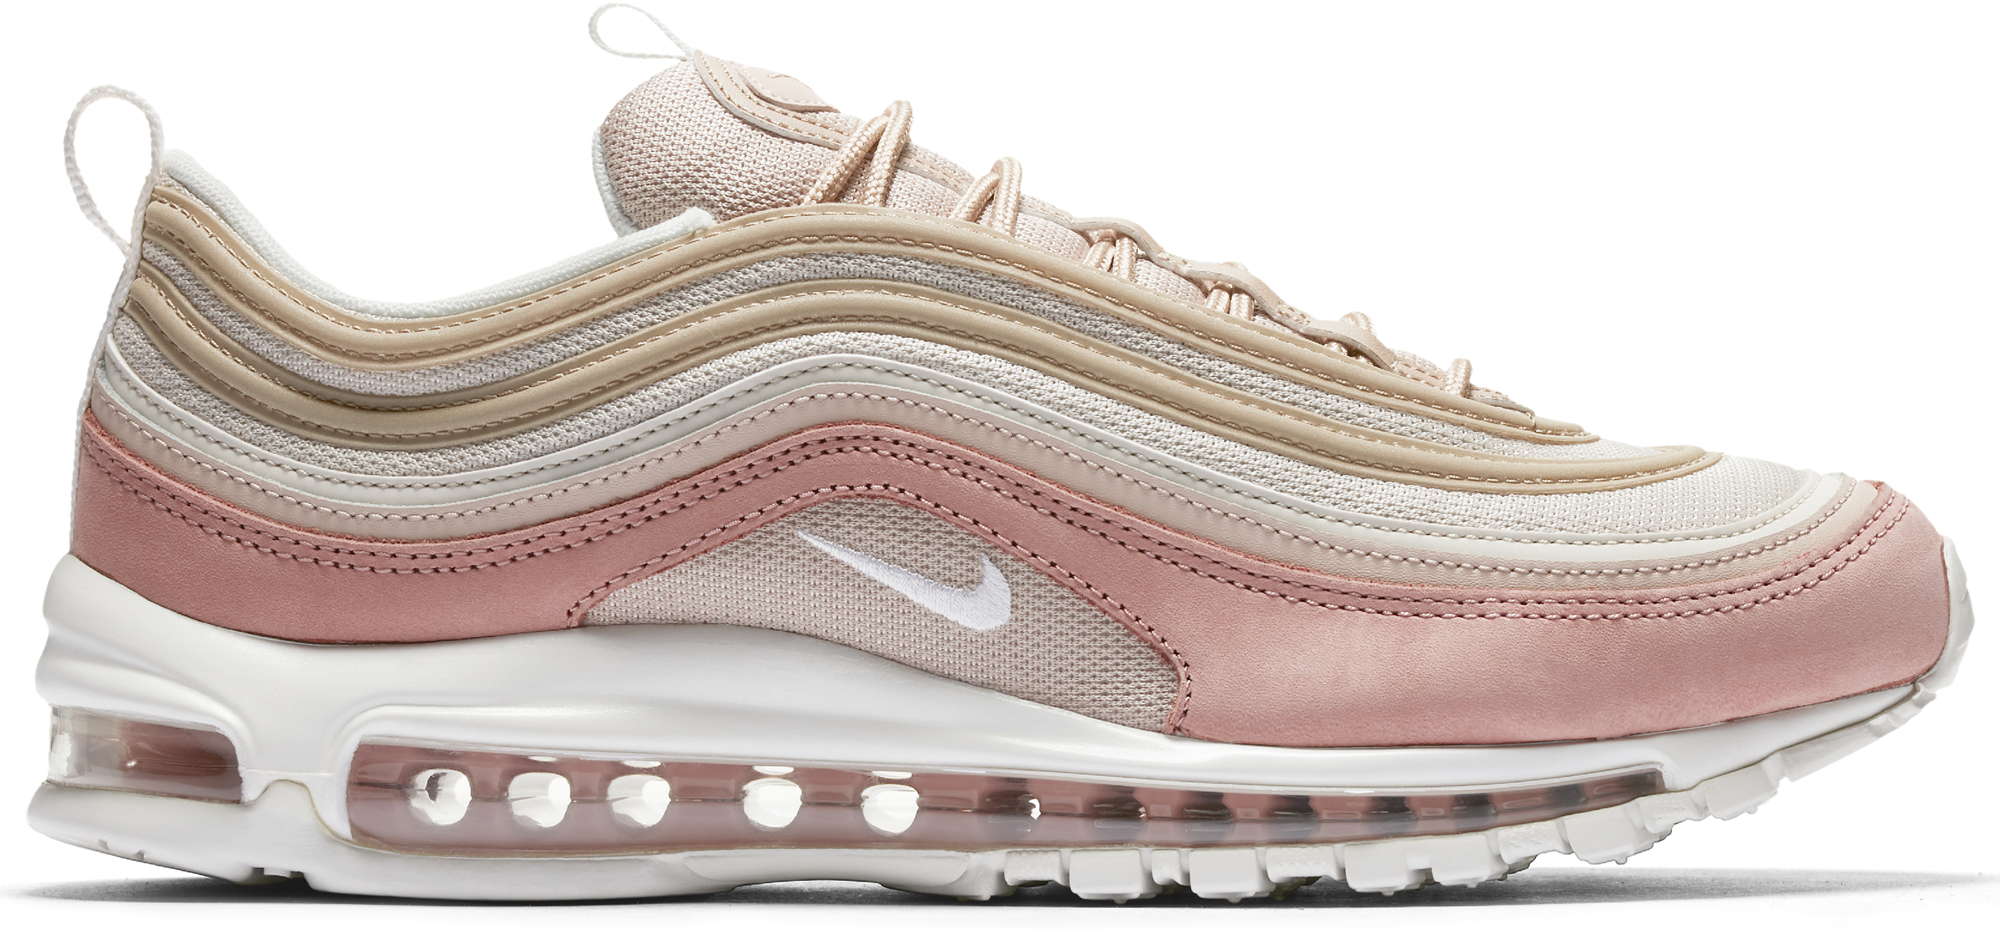 finest selection 5b258 3e3c1 air max 97 particle beige for sale Nike ...